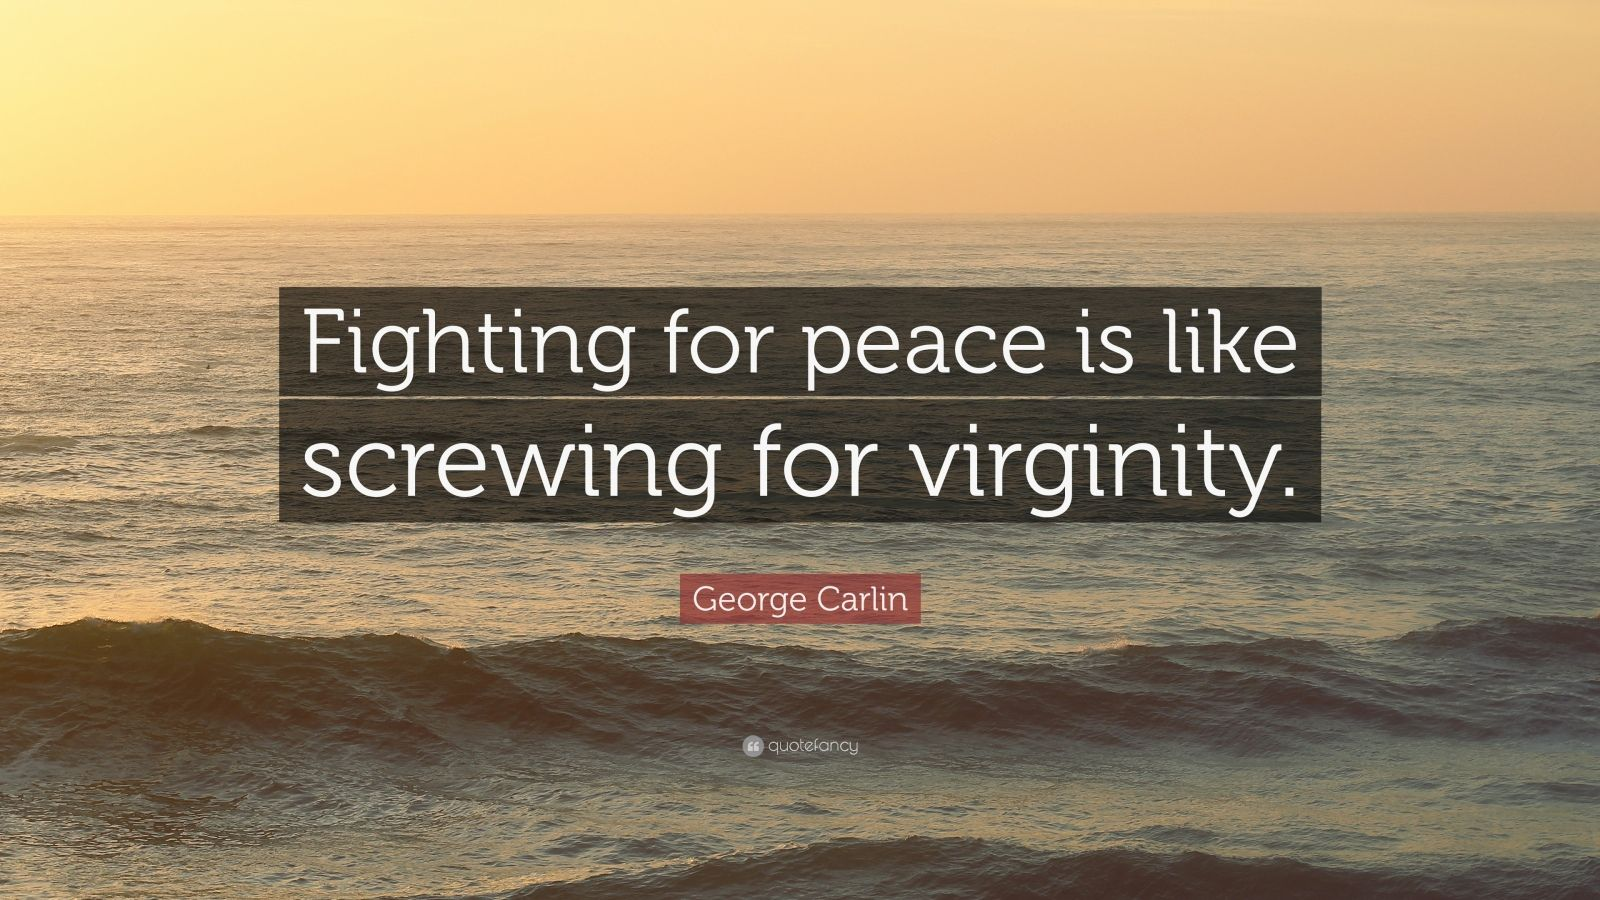 The fighting for peace is like screwing for virginity great